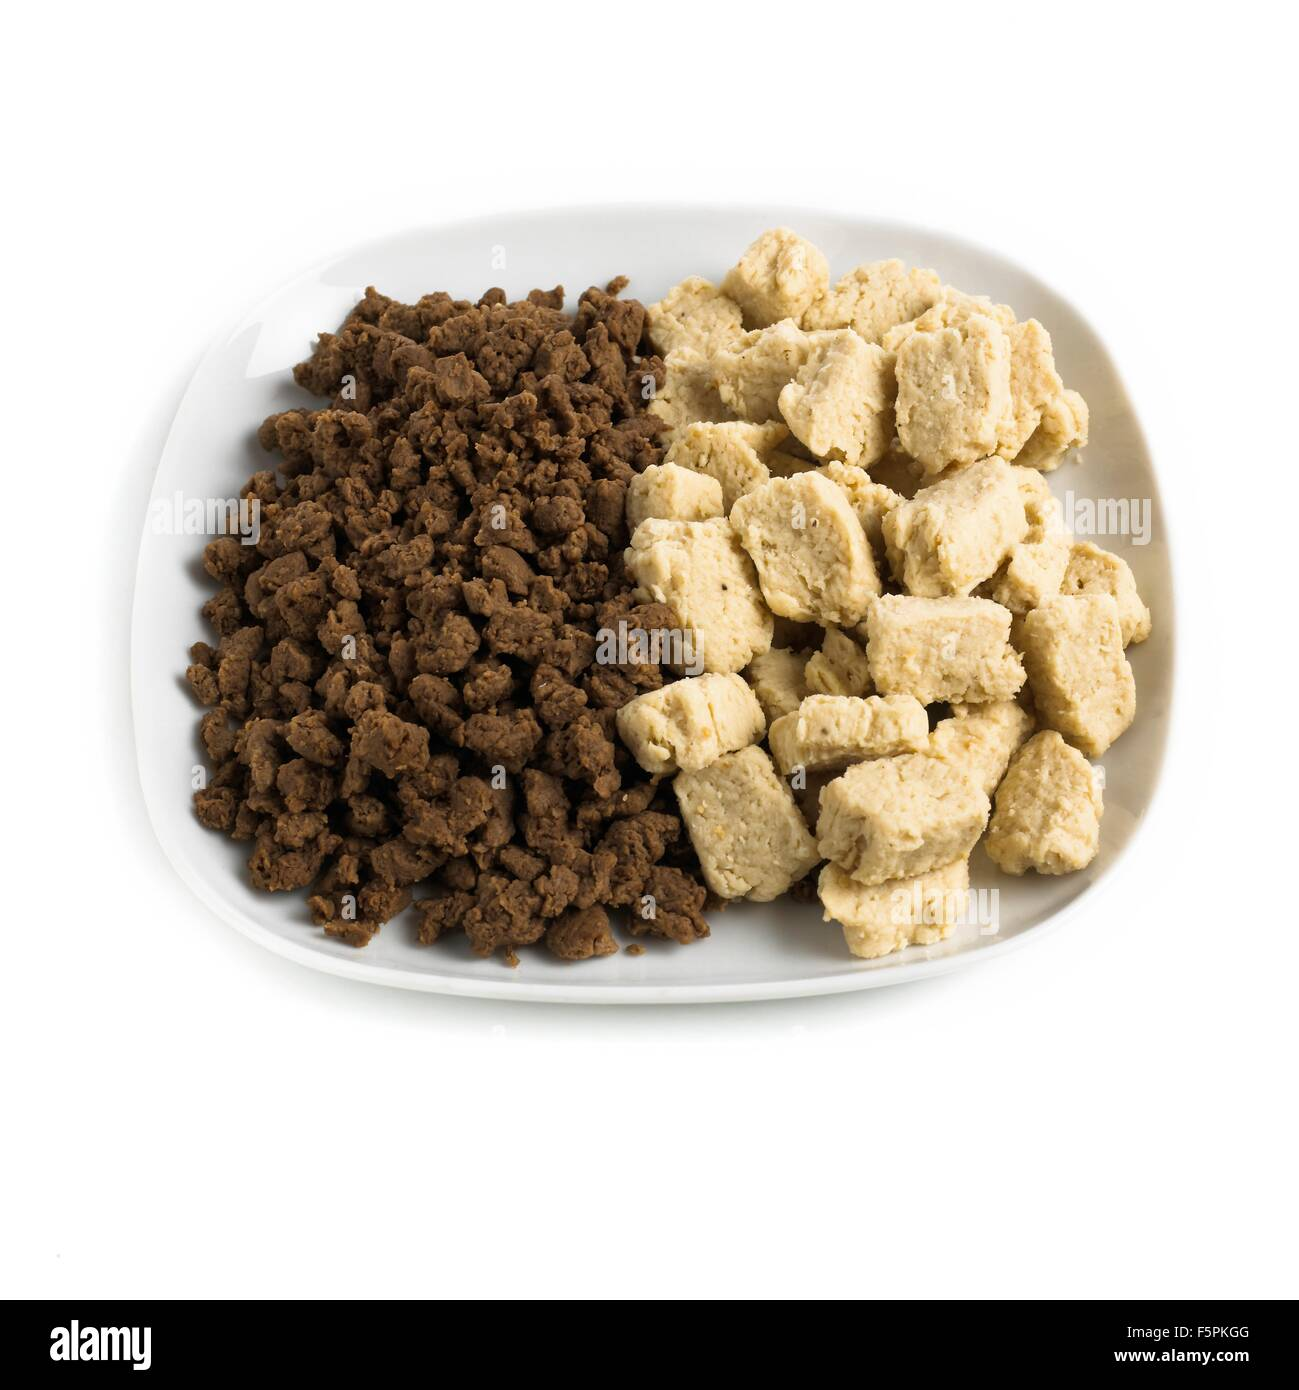 Meat substitutes against a white background. - Stock Image